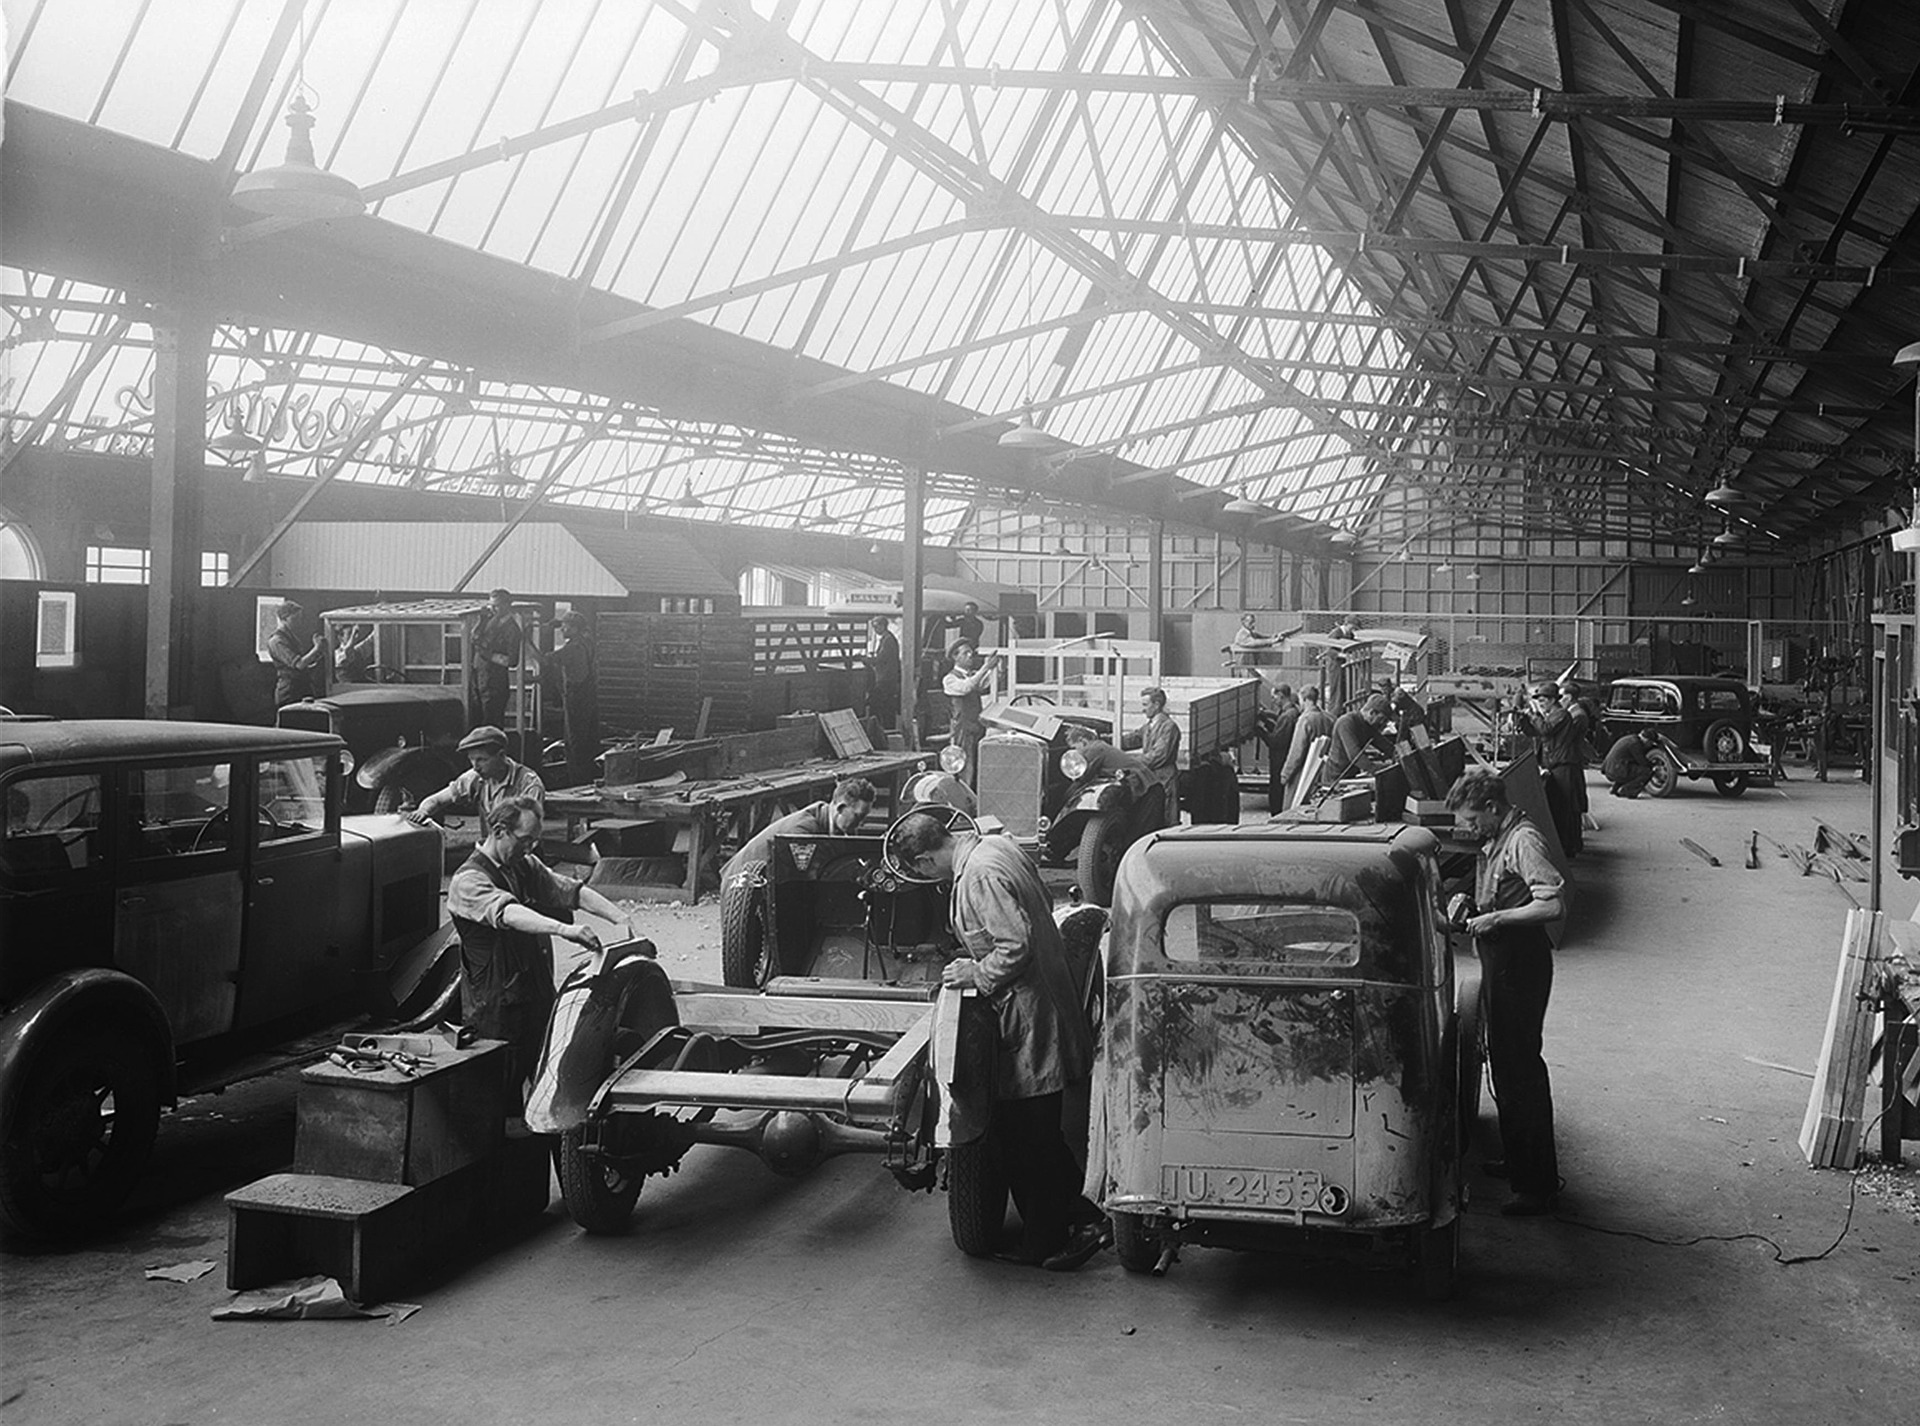 Car production assembly line in the vintage era